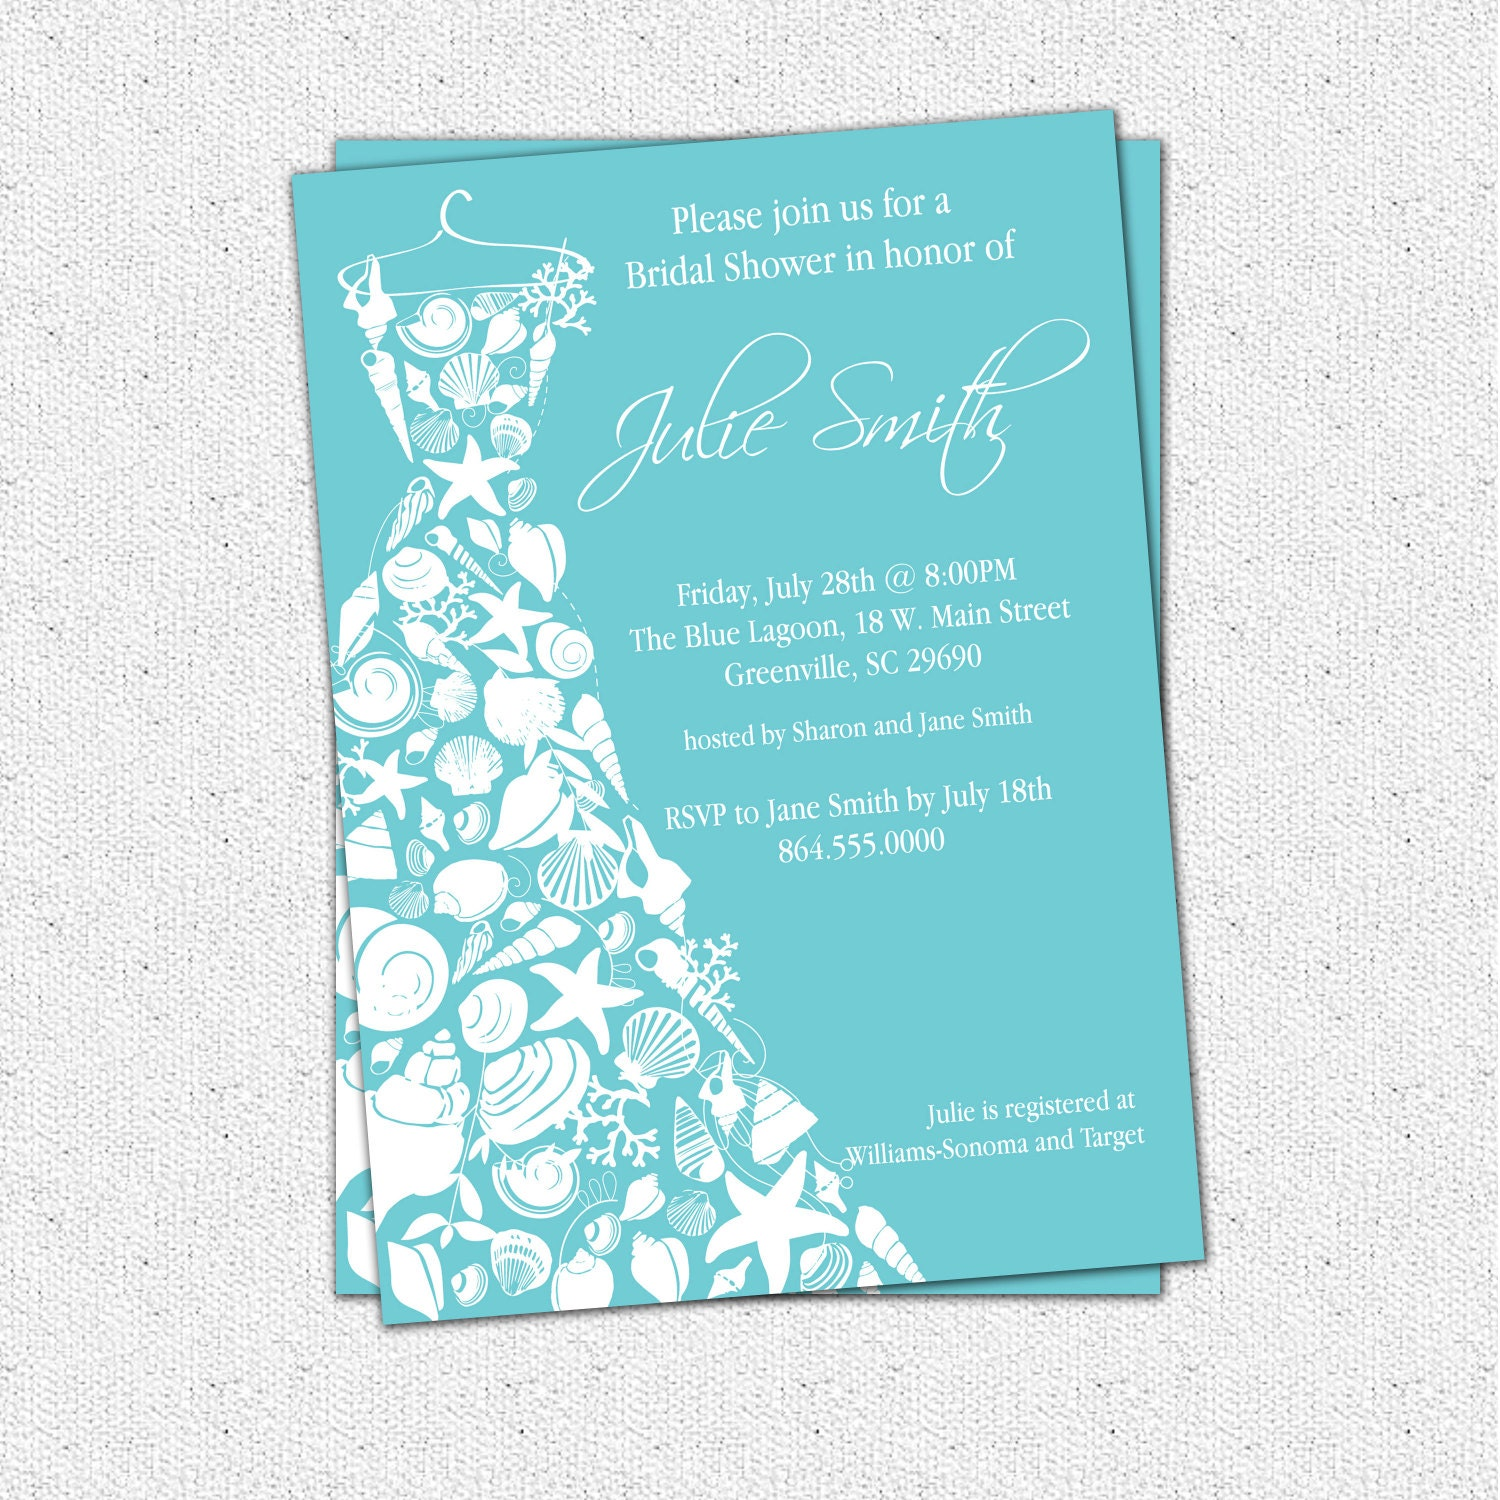 Bridal shower invitation seashell dress elegant sea shell for Wedding dress bridal shower invitations